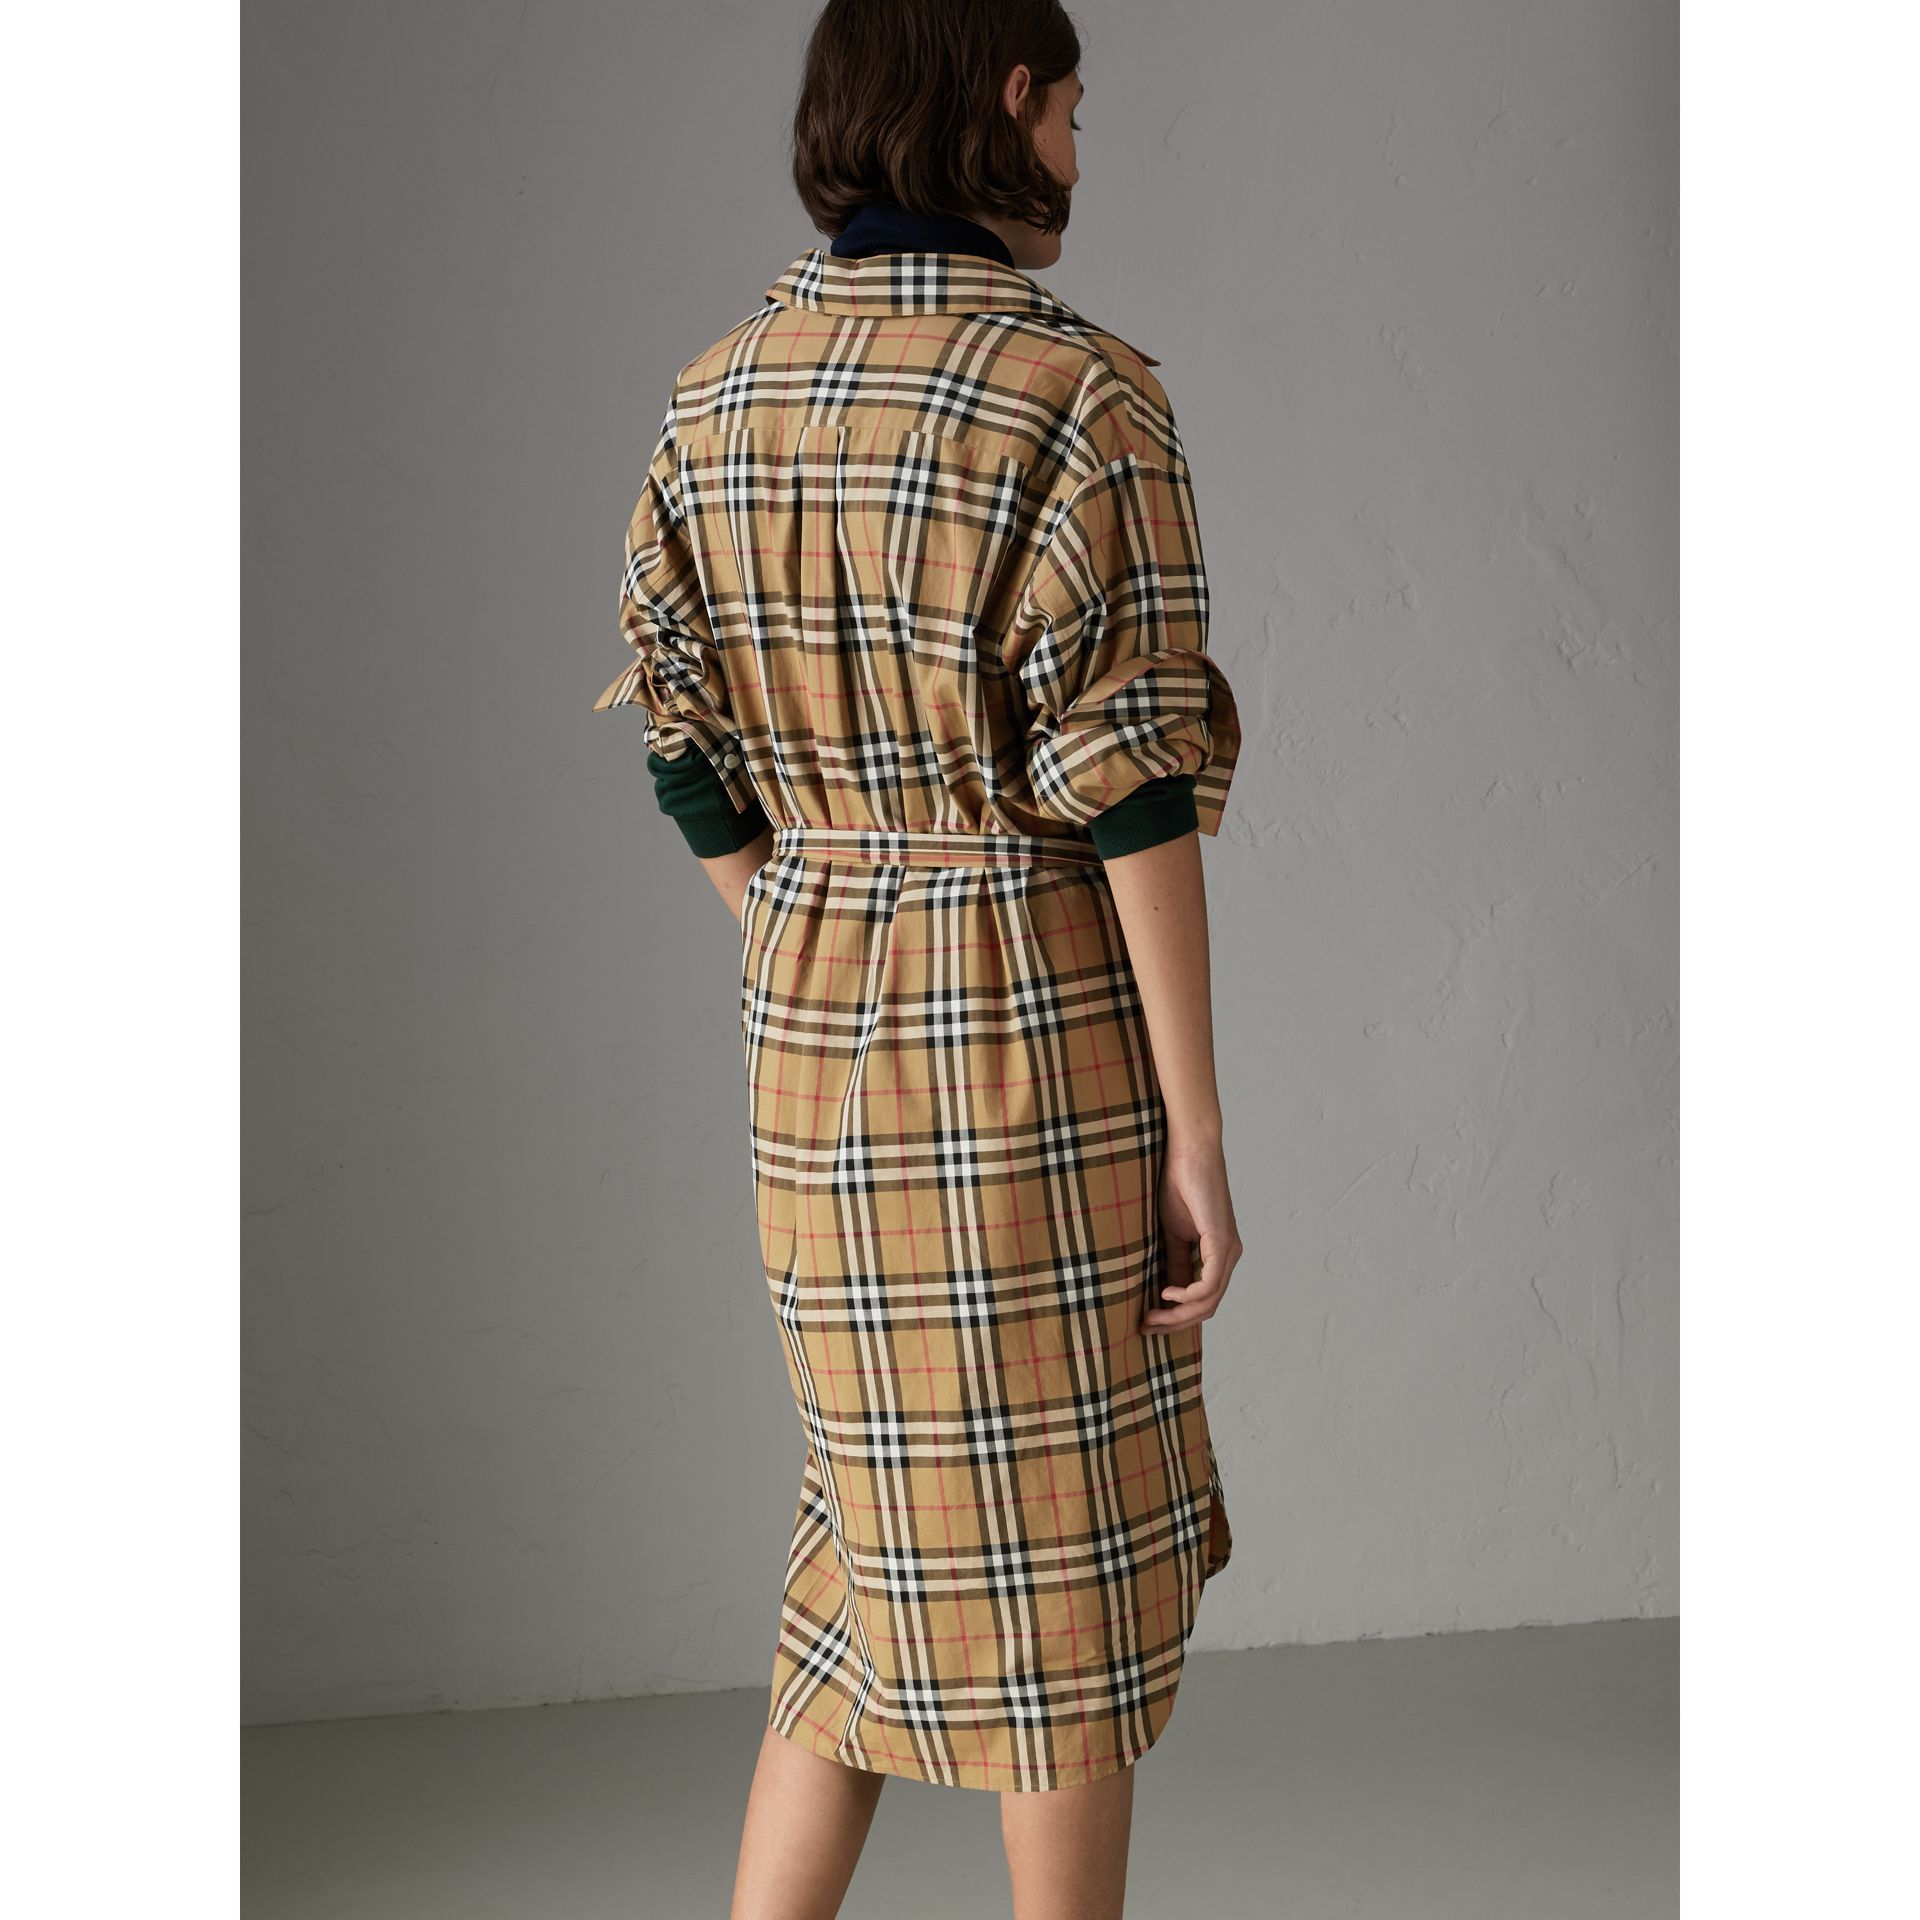 Tie-waist Vintage Check Cotton Shirt Dress in Antique Yellow - Women | Burberry Canada - gallery image 2